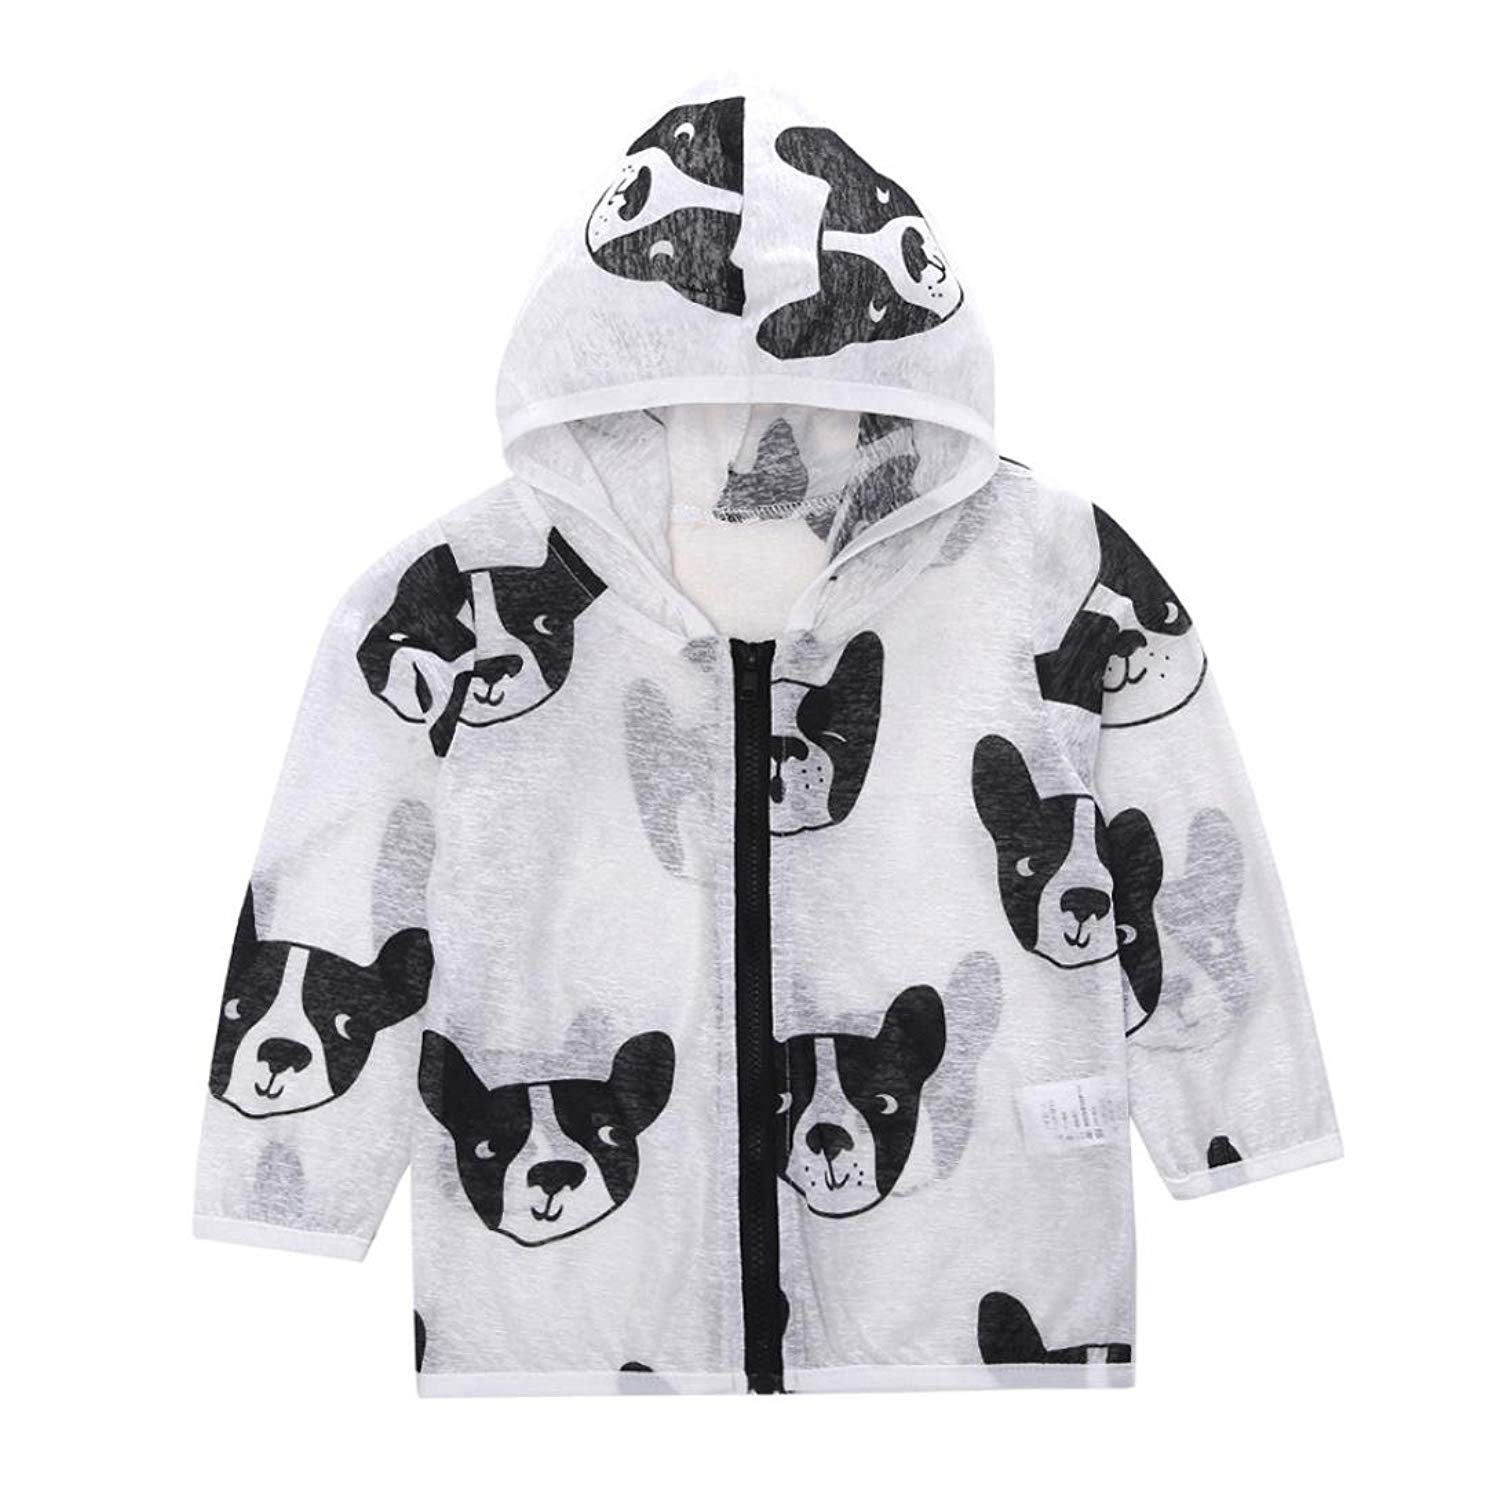 f1a9ae1cf7f Get Quotations · Boomboom Baby Summer Coat Baby Kid Summer Sun Protection  Jacket Dog Printed Hooded ZipThin Coats for